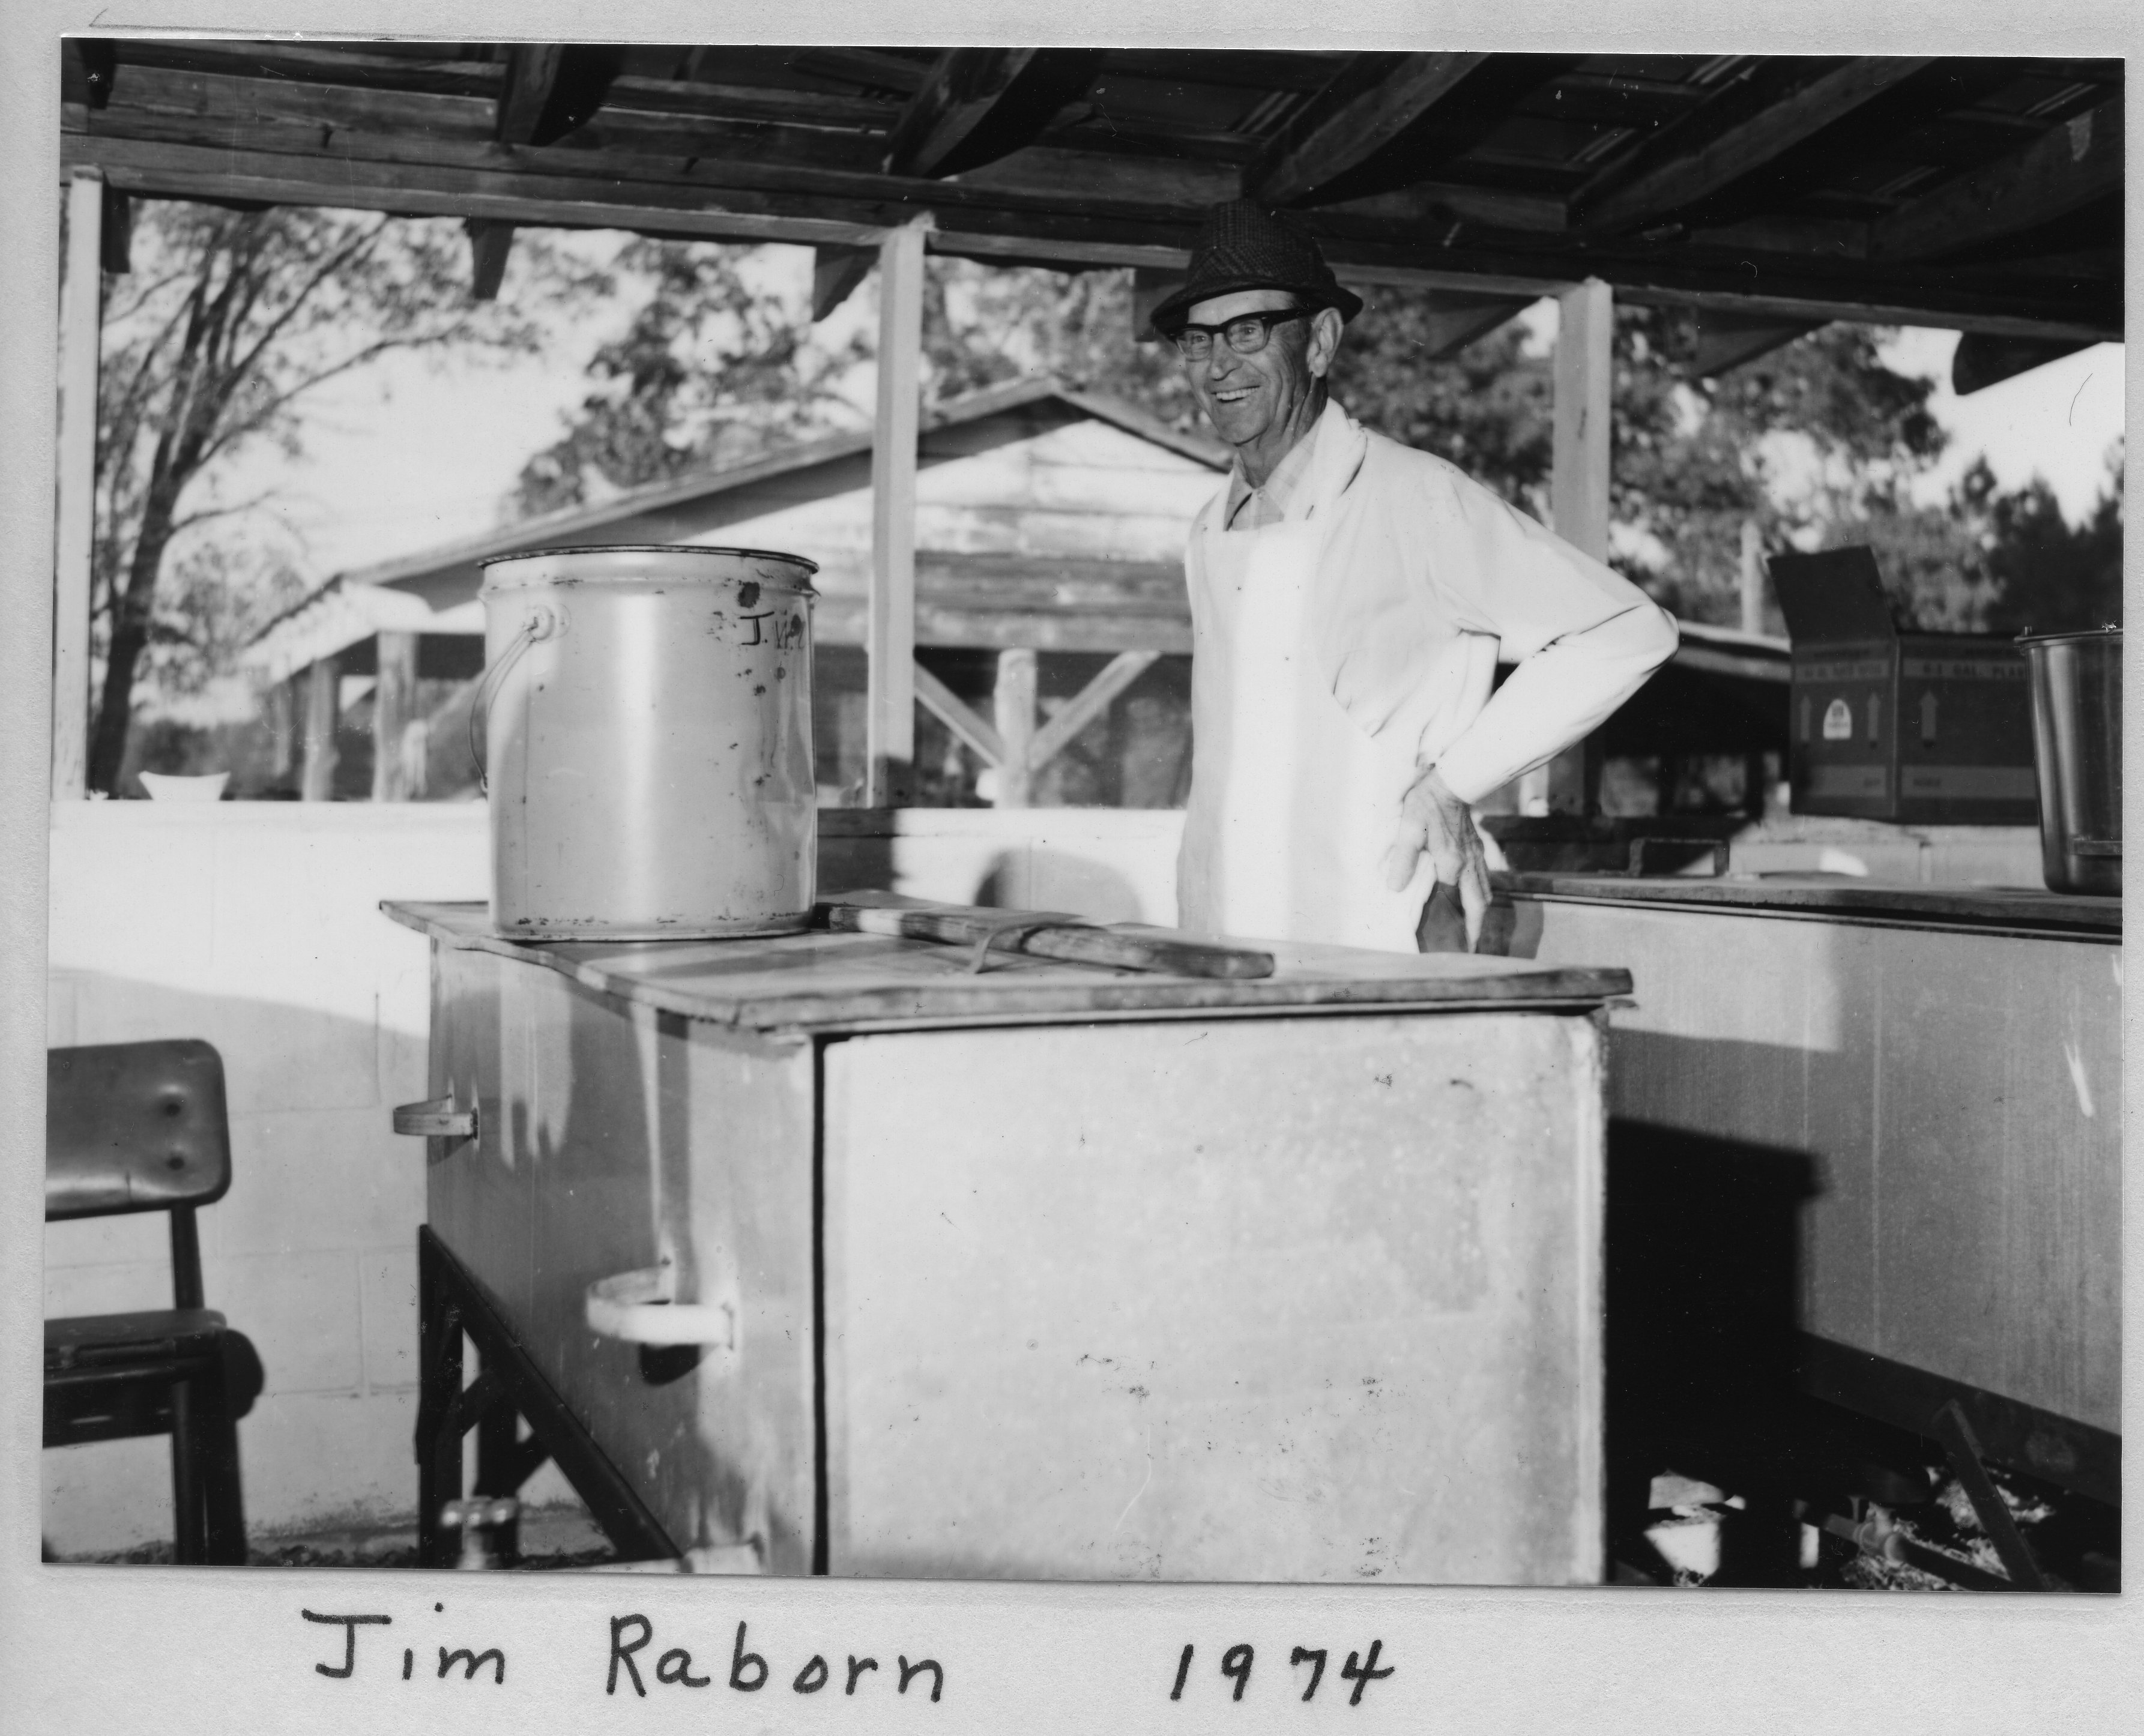 Jim Raborn Coffee Maker